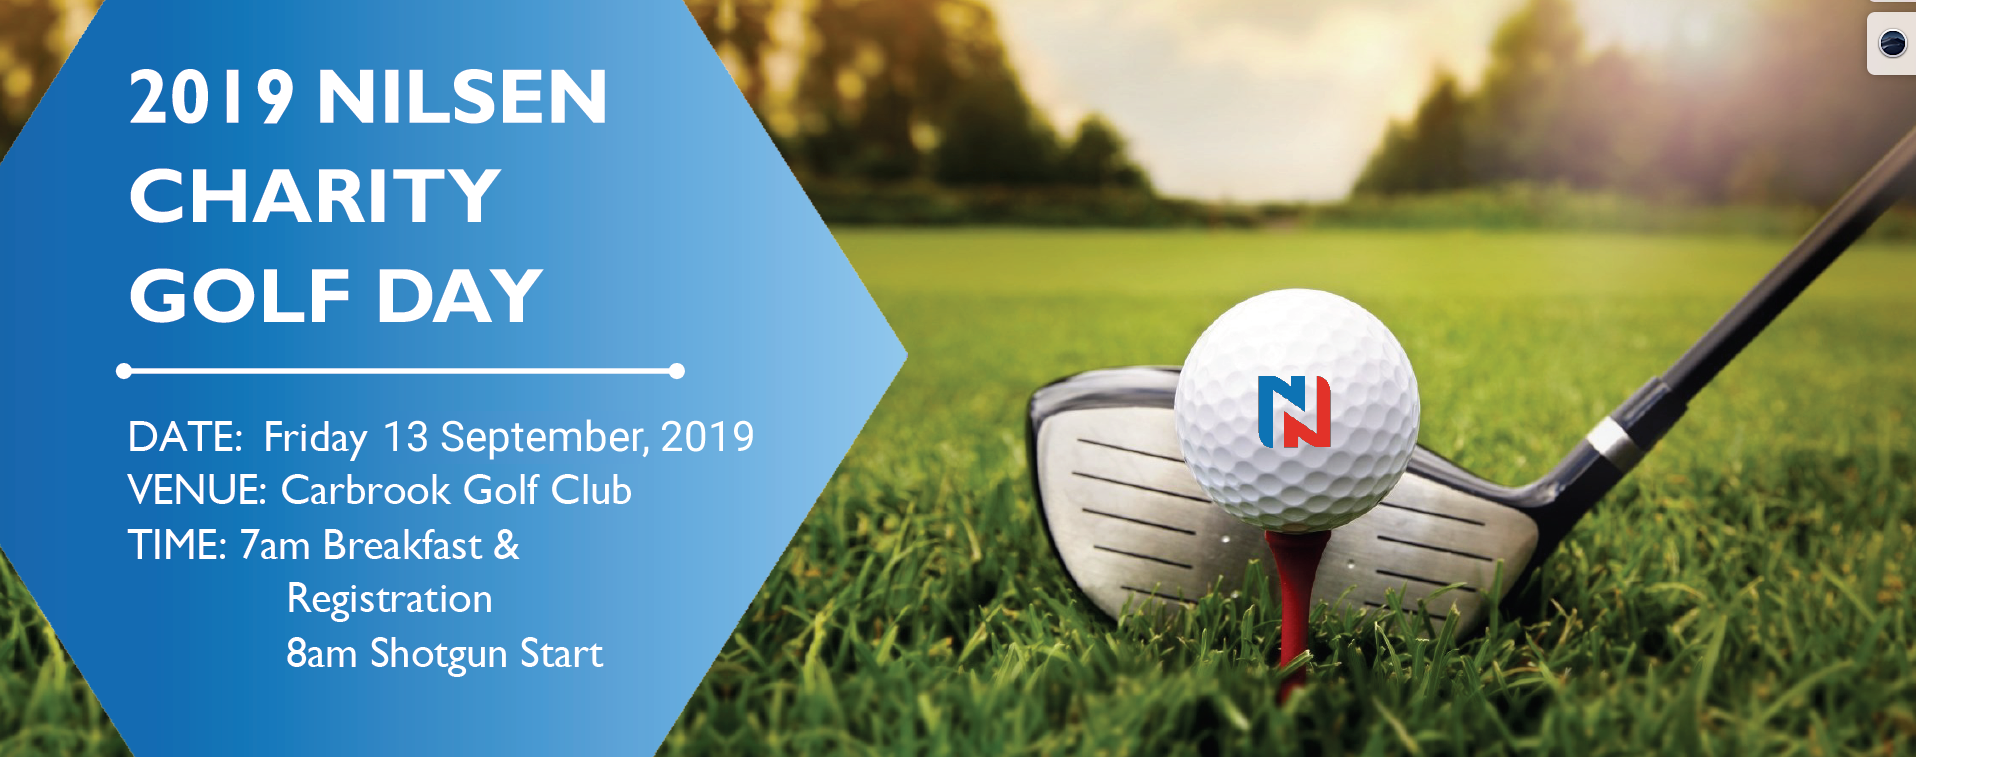 2019 Nilsen Charity Golf Day